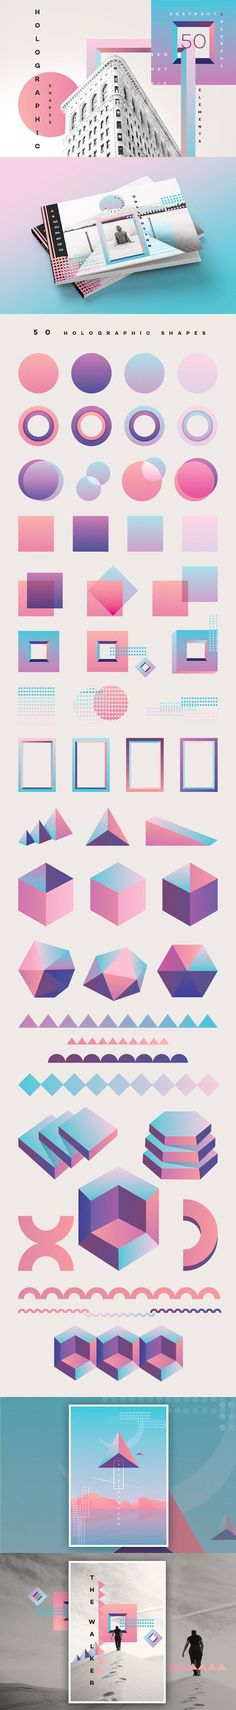 50 Holographic Shapes by Polar Vectors on These colorful geometric shapes can be used in poster concepts, brochure designs, branding and so much more. Graphisches Design, Layout Design, Print Design, Logo Design, Shape Design, Design Elements, Modern Design, Design Ideas, Brochure Design